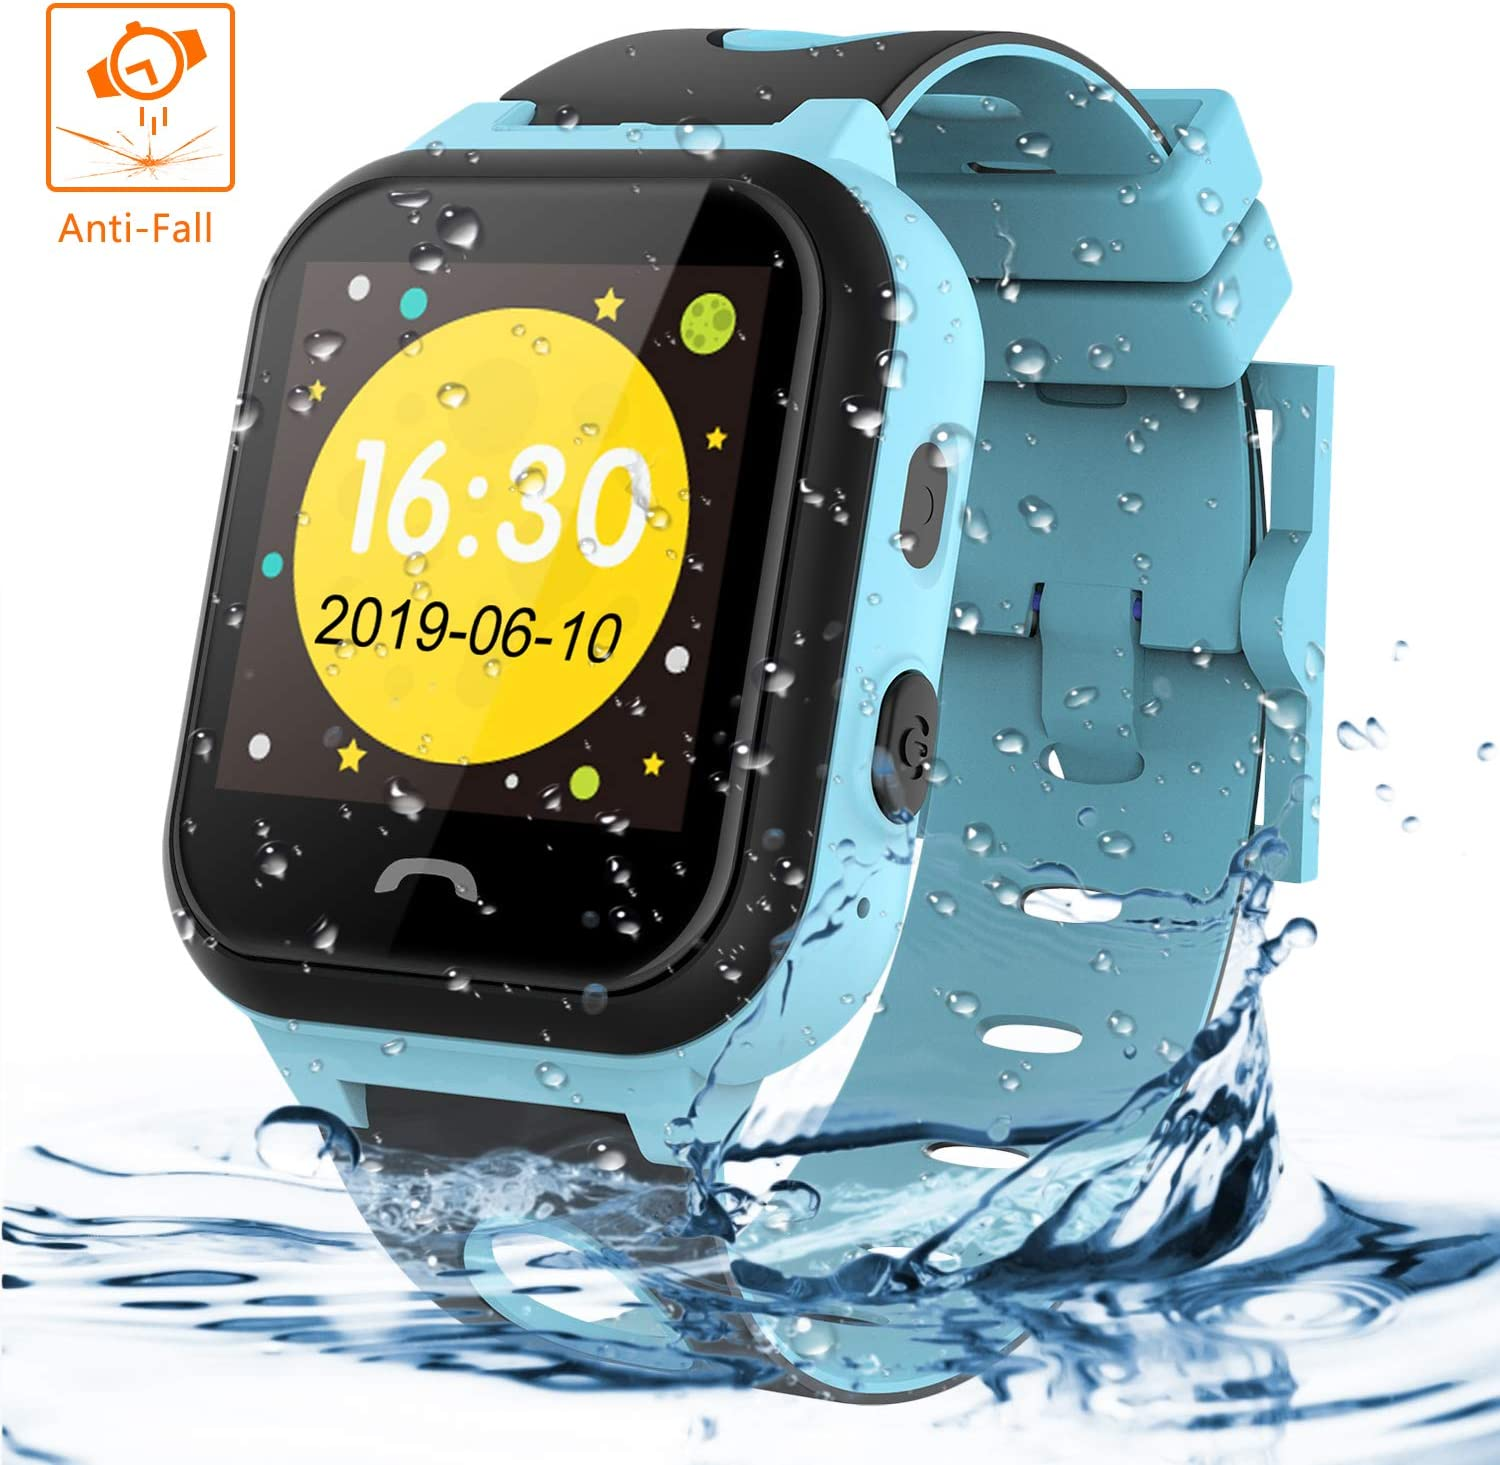 Themoemoe Kids Smartwatch Phone, Kids Smartwatch Waterproof Anti-Fall 2G GPS/LBS Tracker SOS Camera Games Compatible with Android iOS(Blue)